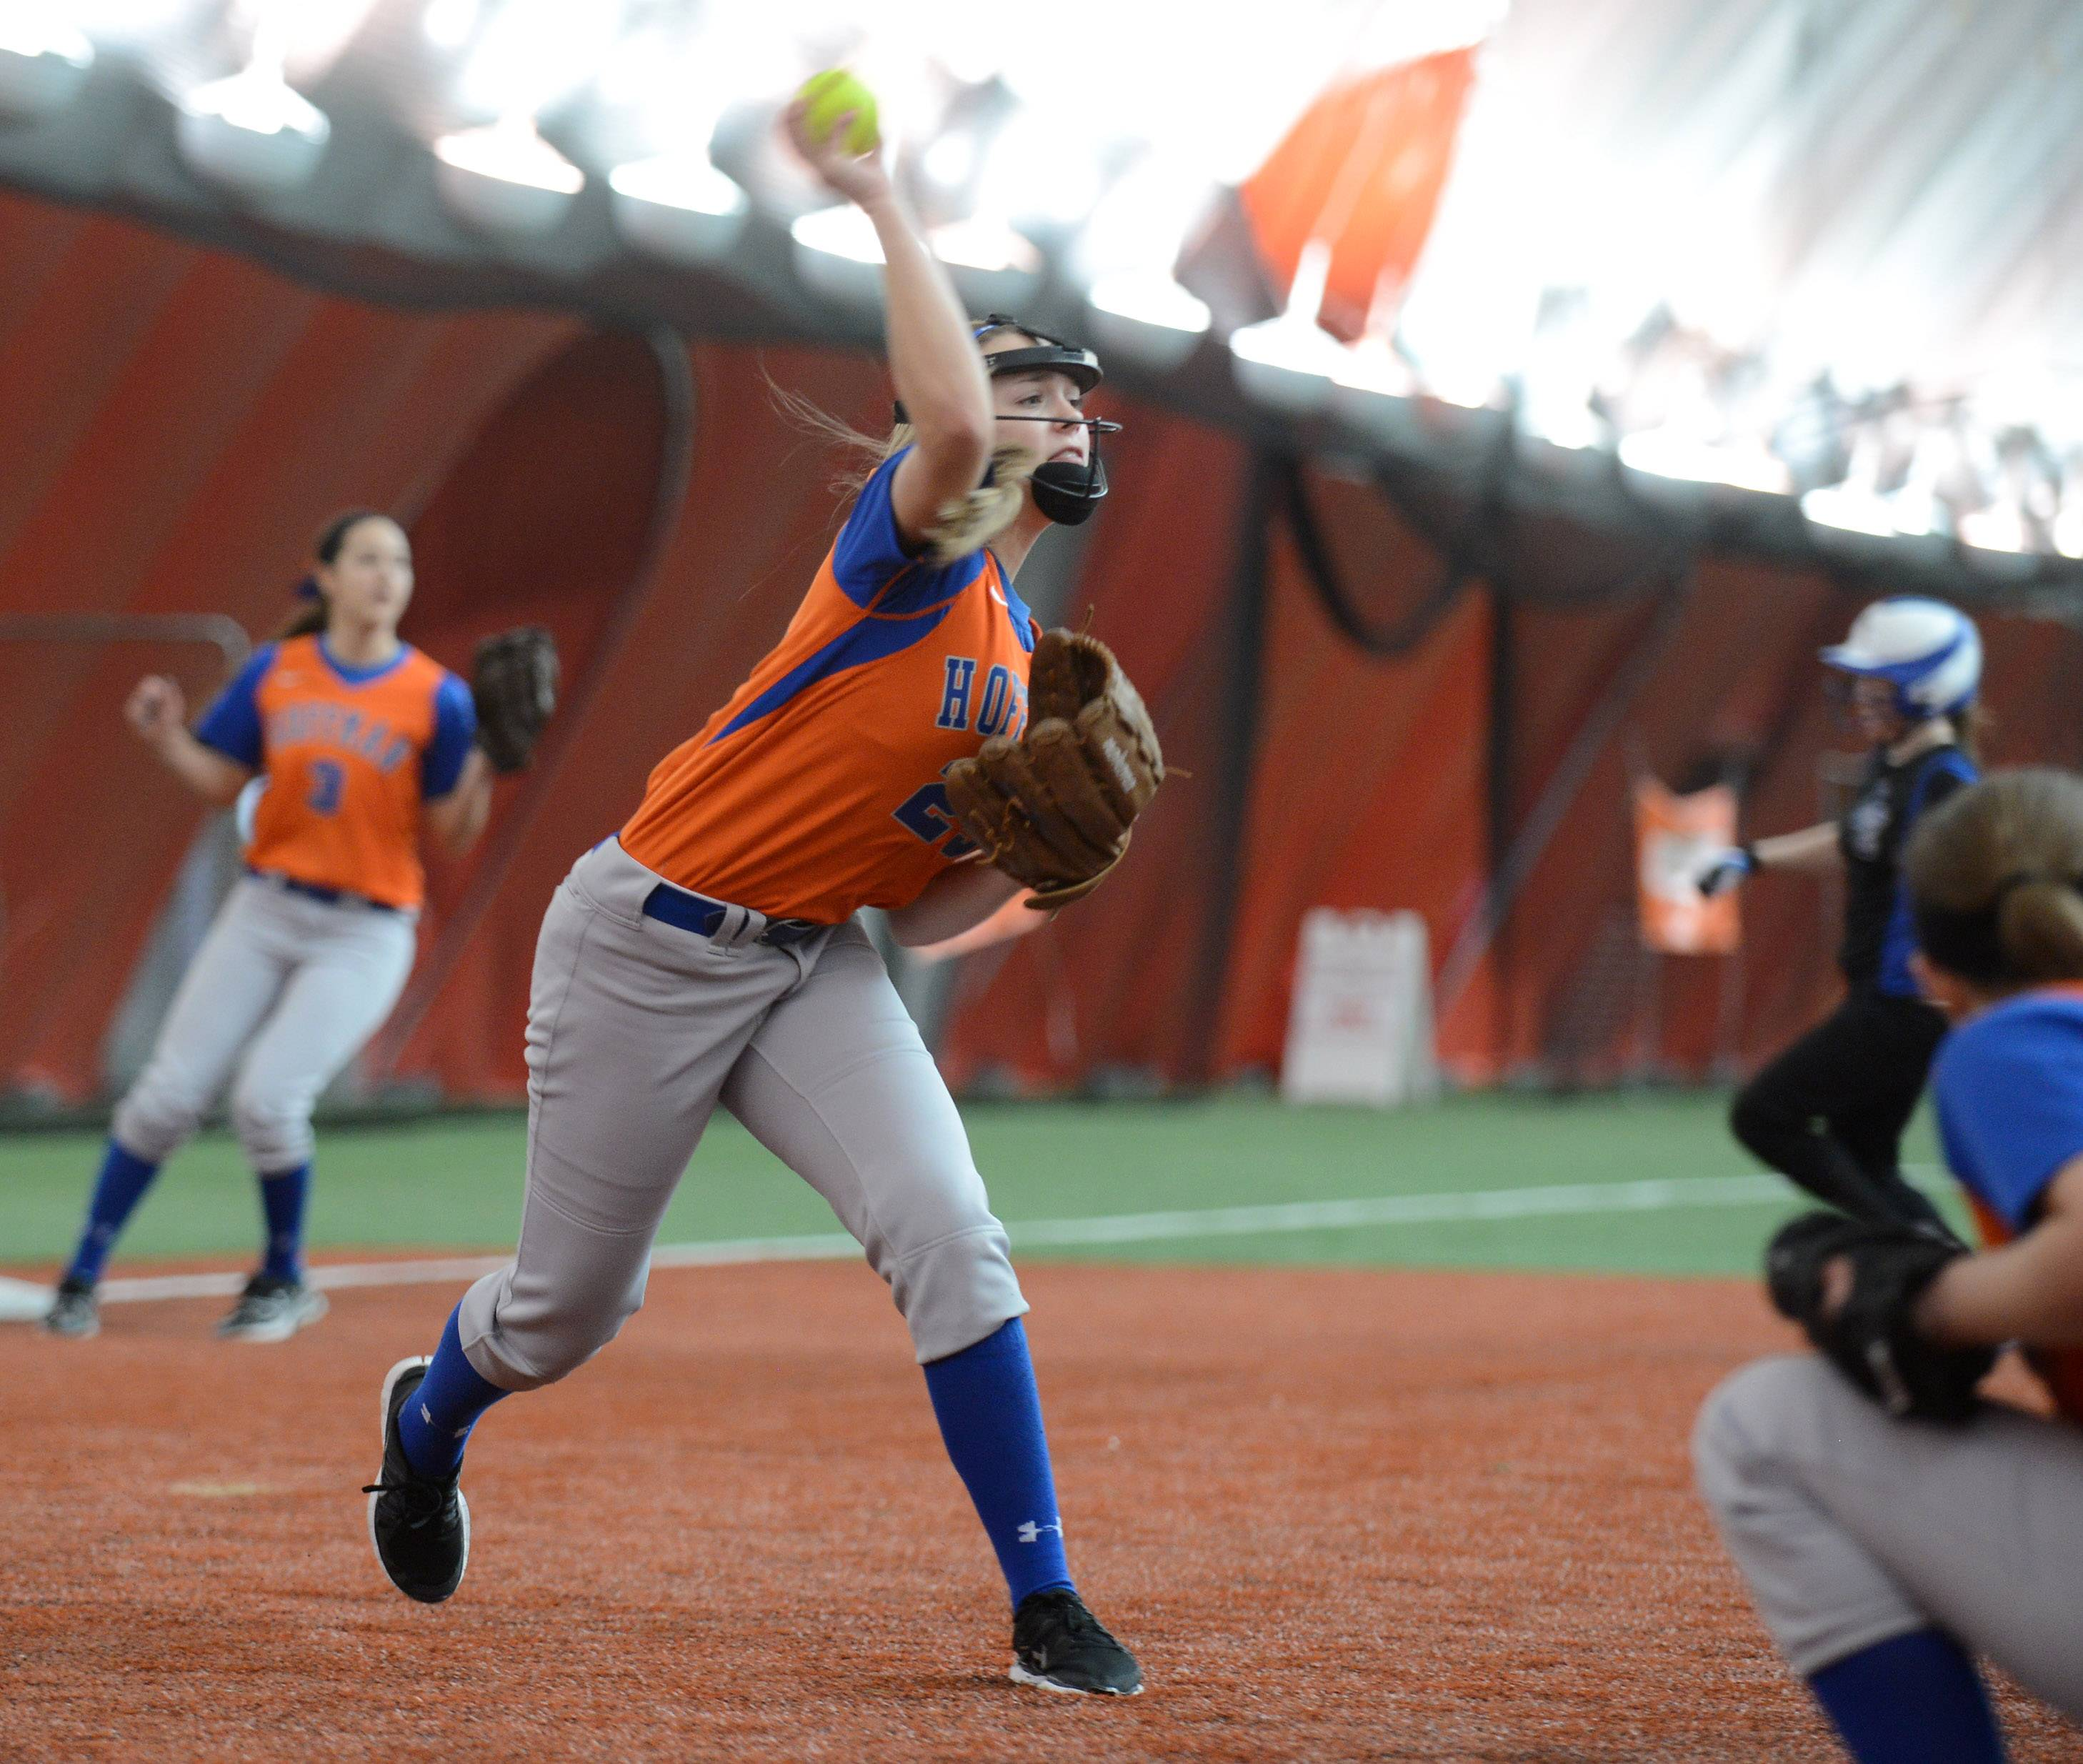 Hoffman Estates' Jordyn Fera fires to first after fielding a Lake Zurich bunt during softball action Tuesday in Rosemont.